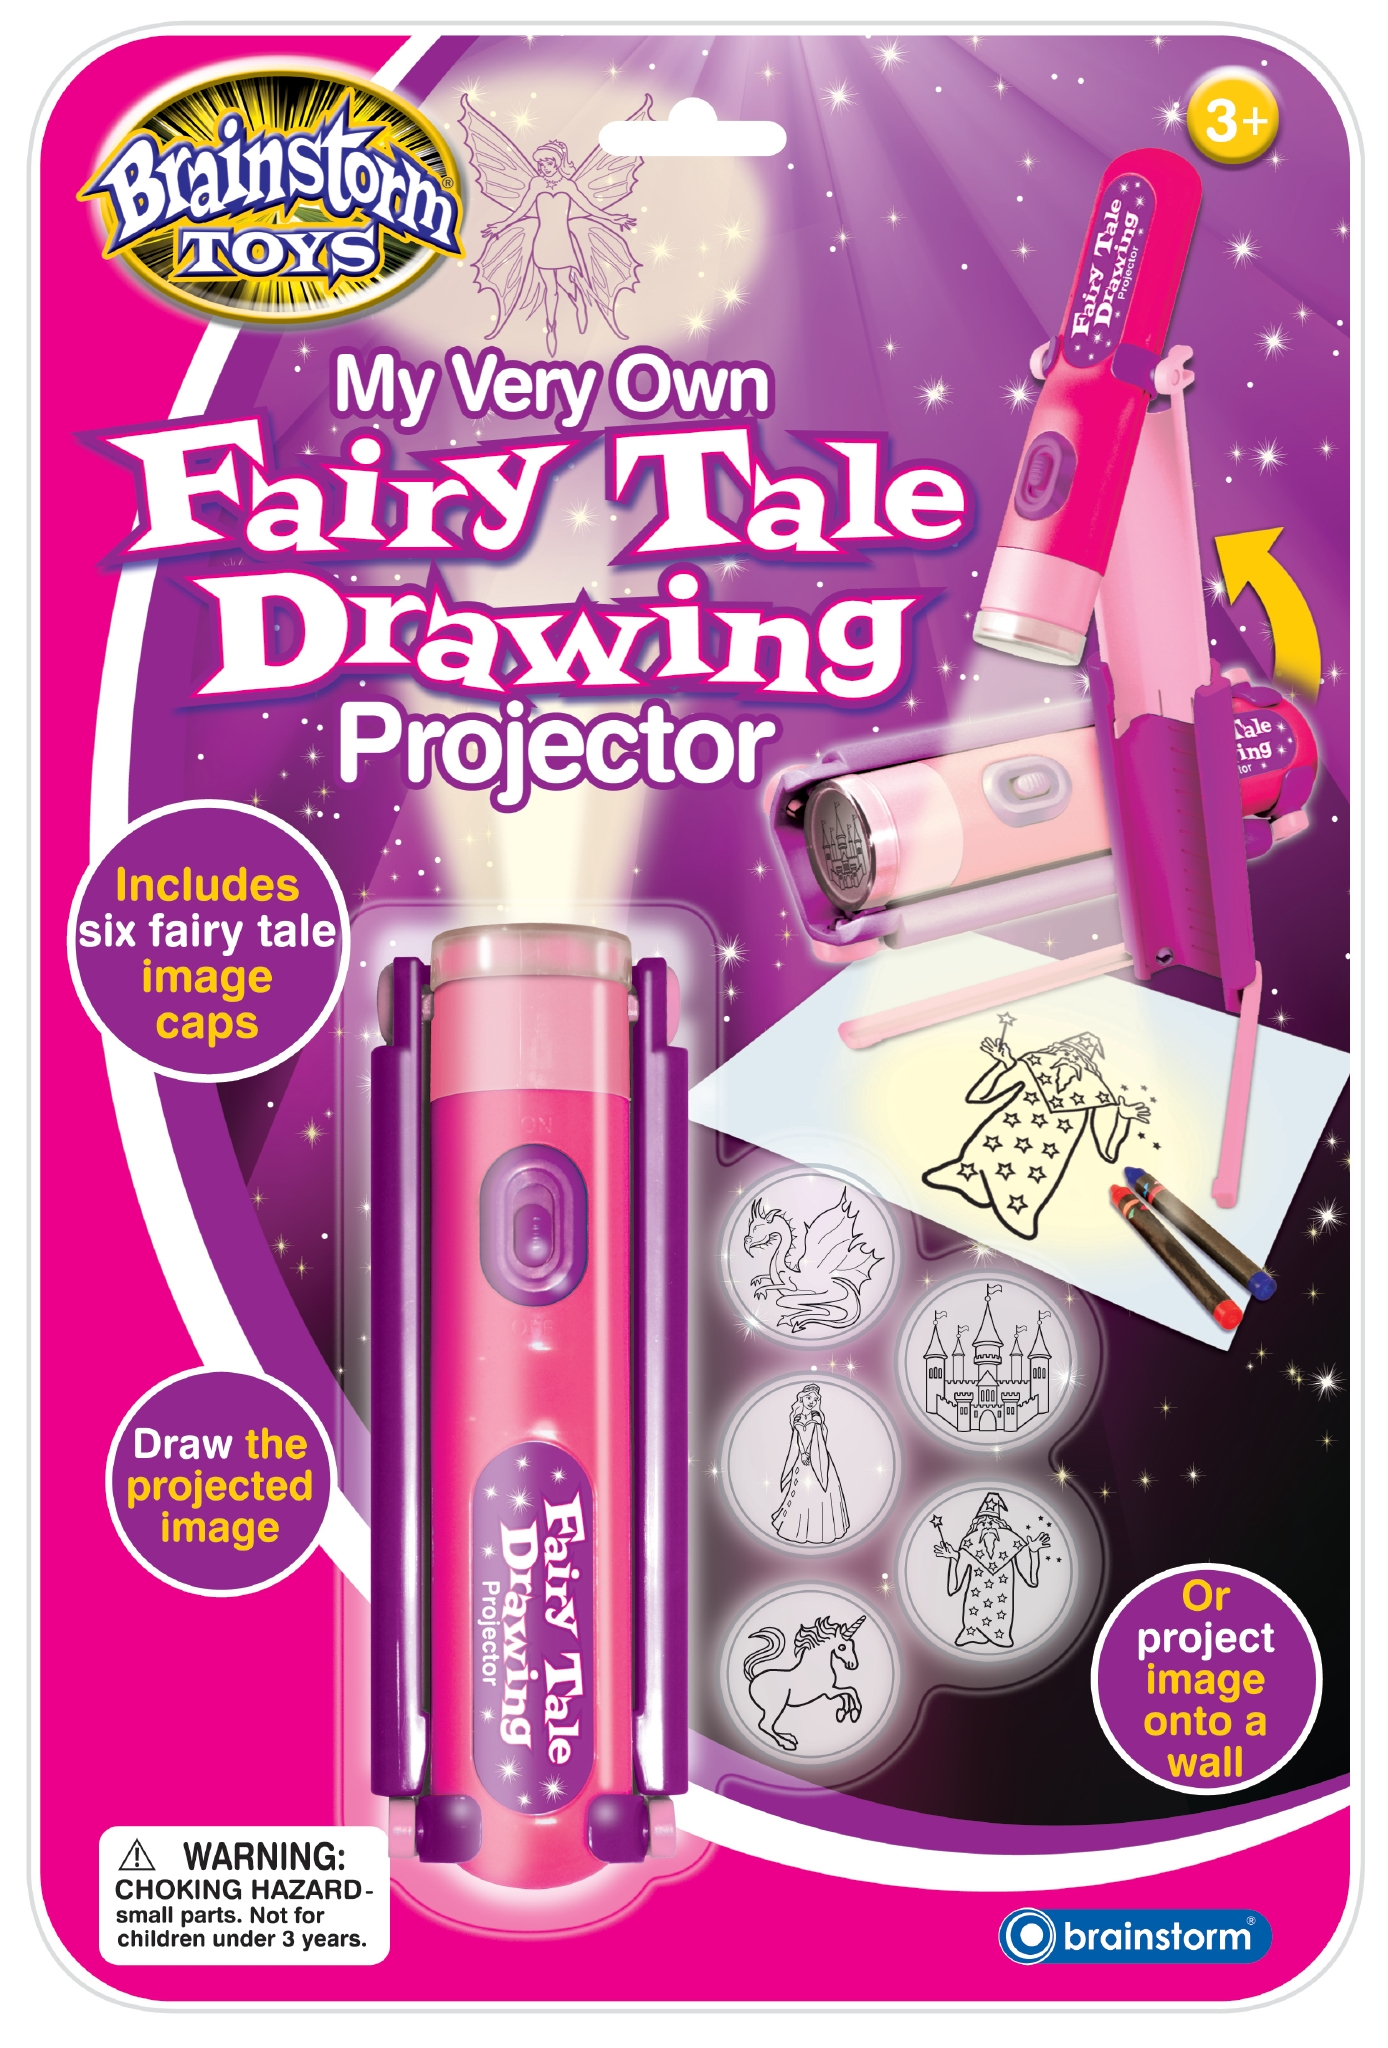 My Very Own Fairy Tale Drawing Projector